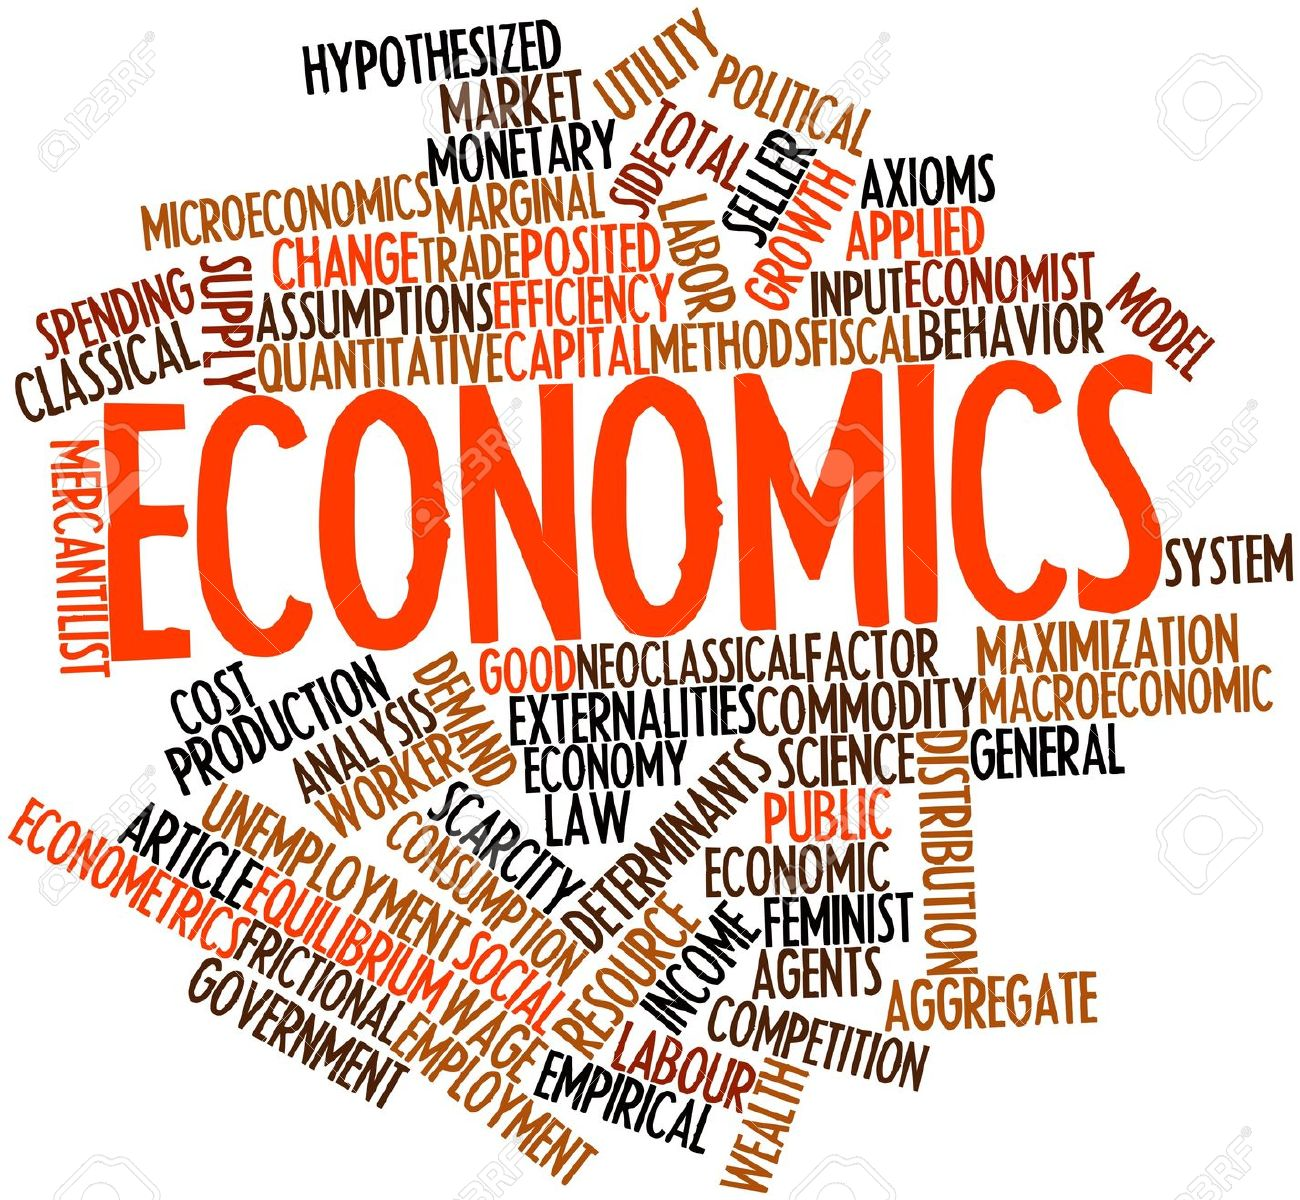 economics definition Economics: economics, social science that seeks to analyze and describe the production, distribution, and consumption of wealth economics was formerly a hobby of gentlemen of leisure, but.